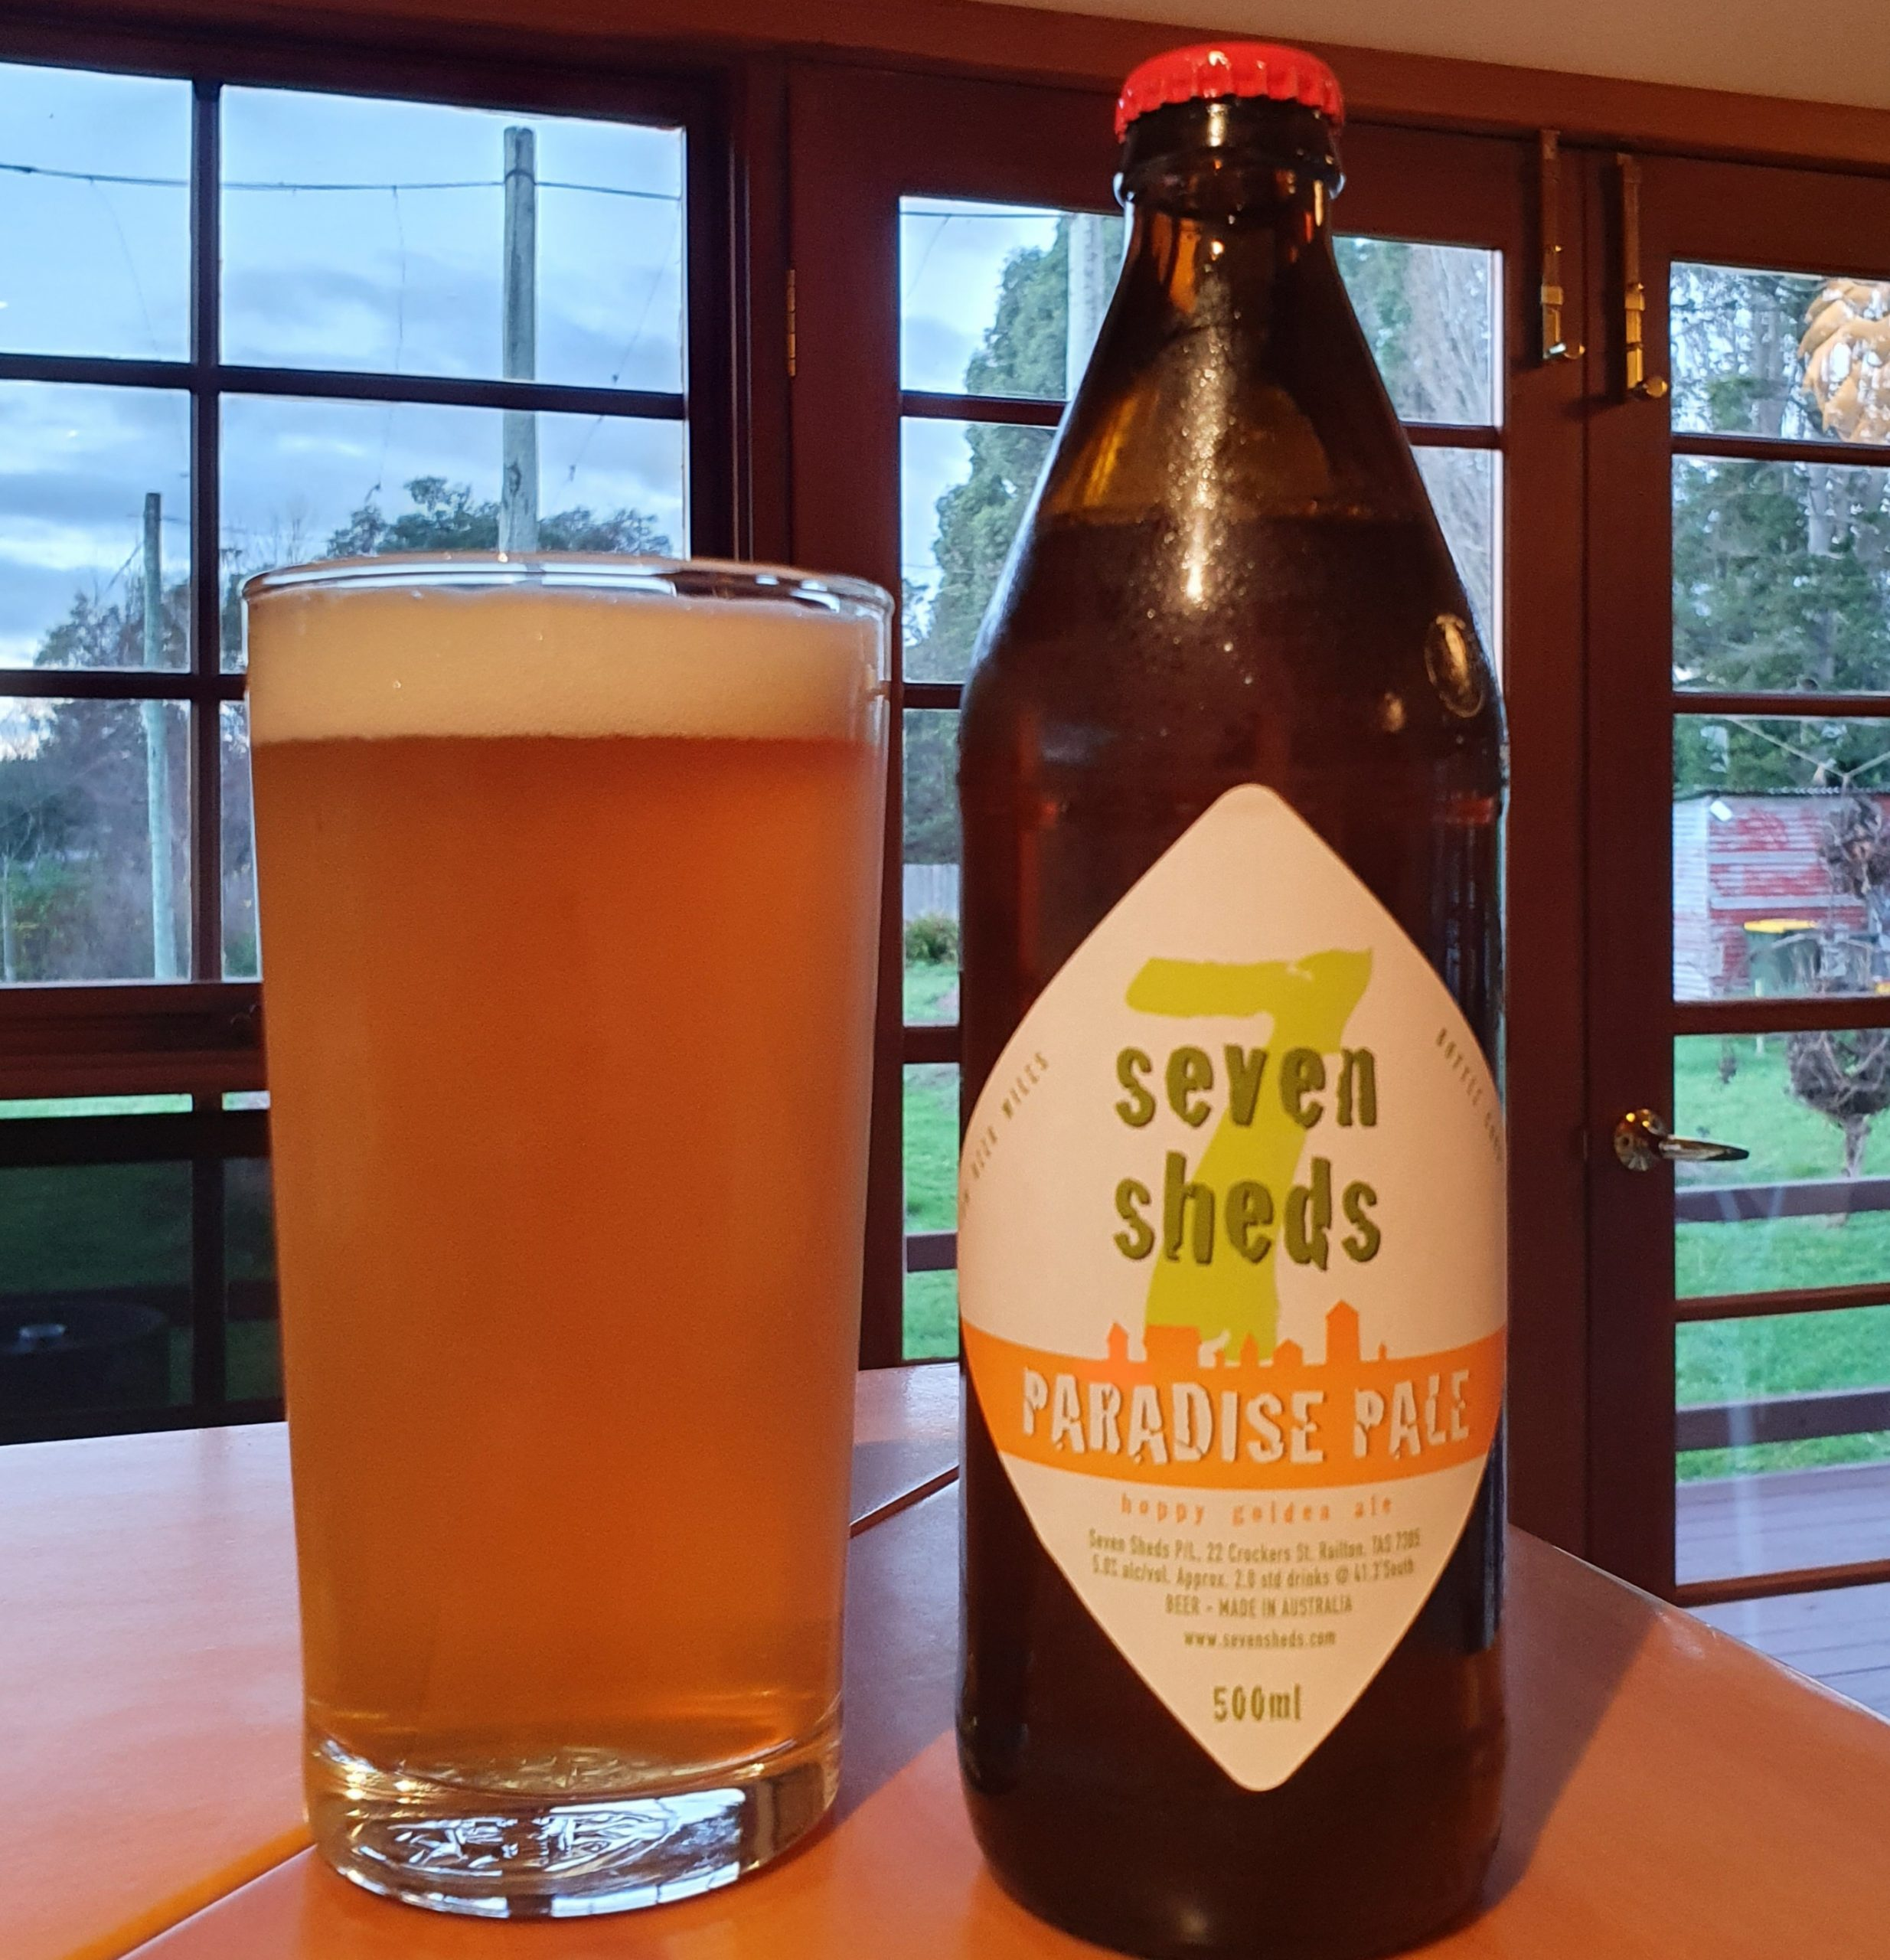 500ml bottle of Seven Sheds Paradise Pale beside a glass of Paradise Pale